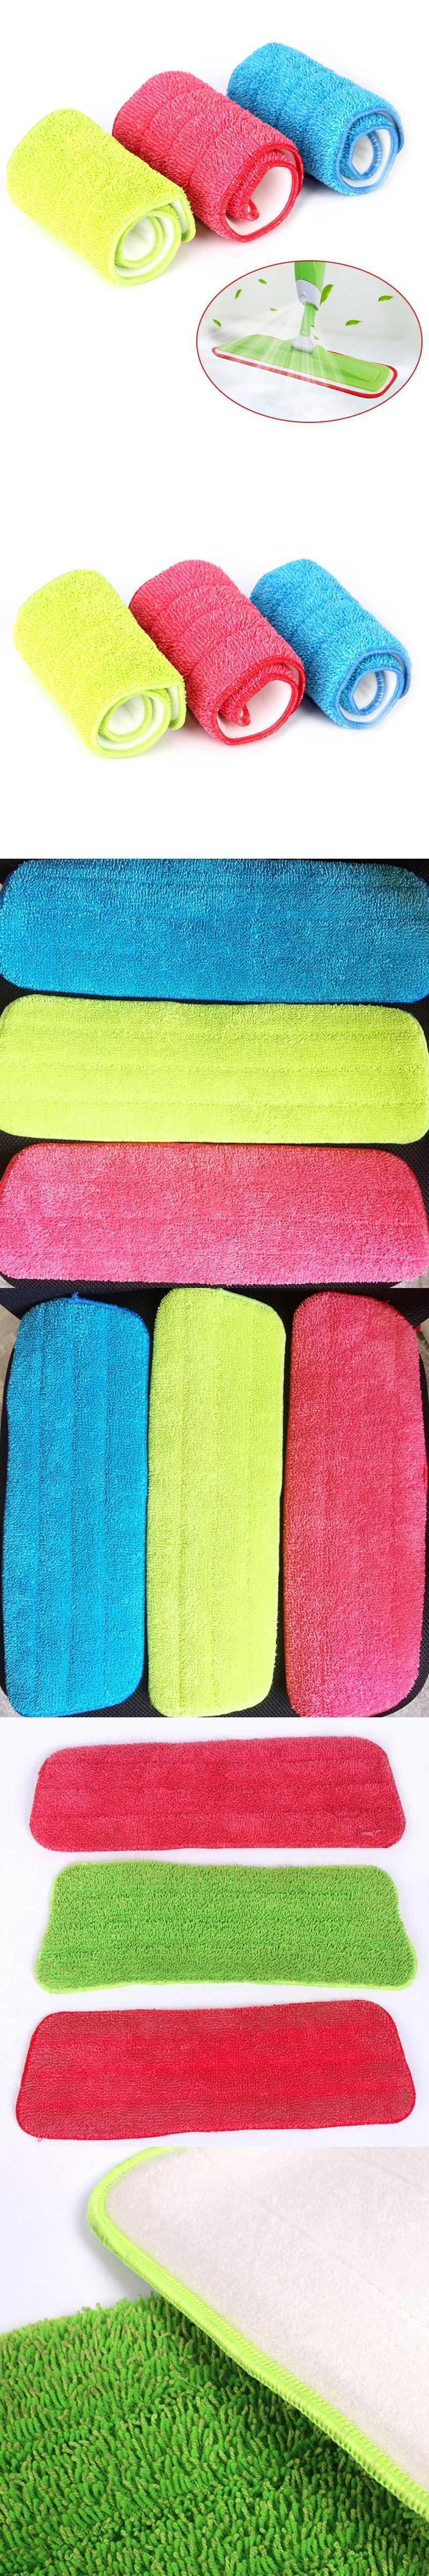 Practical household dust cleaning reusable microfiber pad for spray